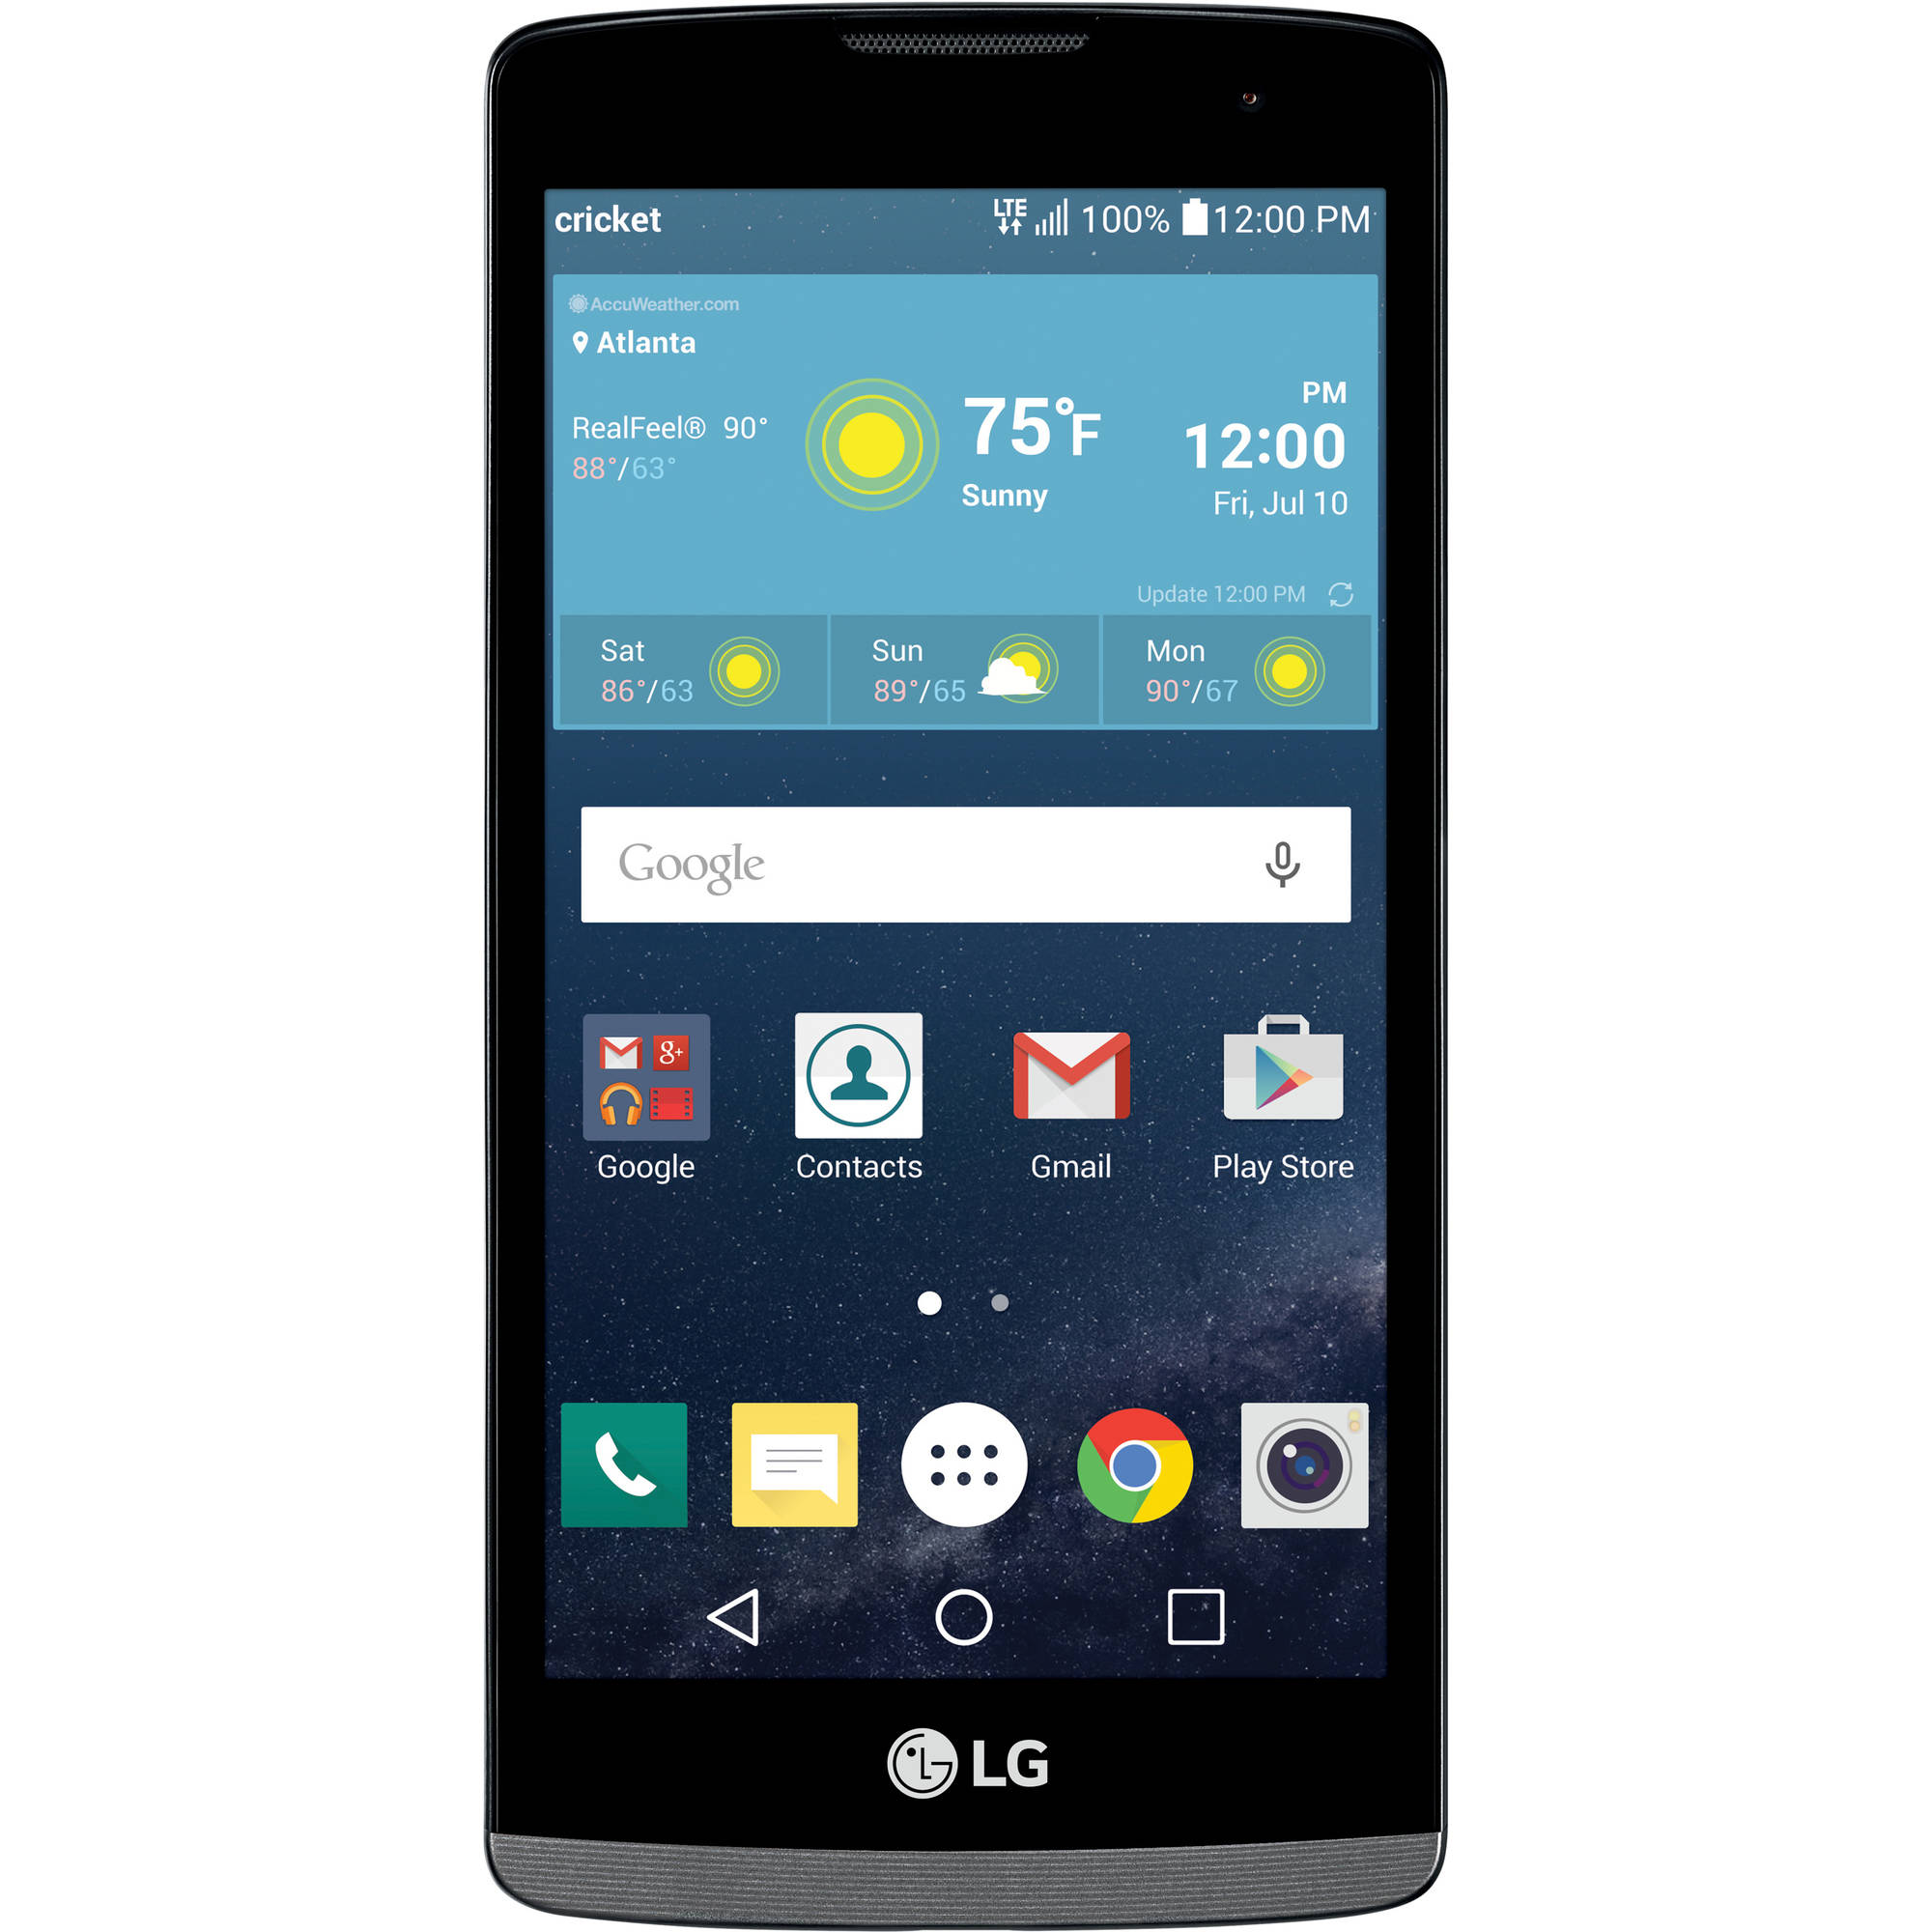 Cricket LG Risio Prepaid Android Smartphone